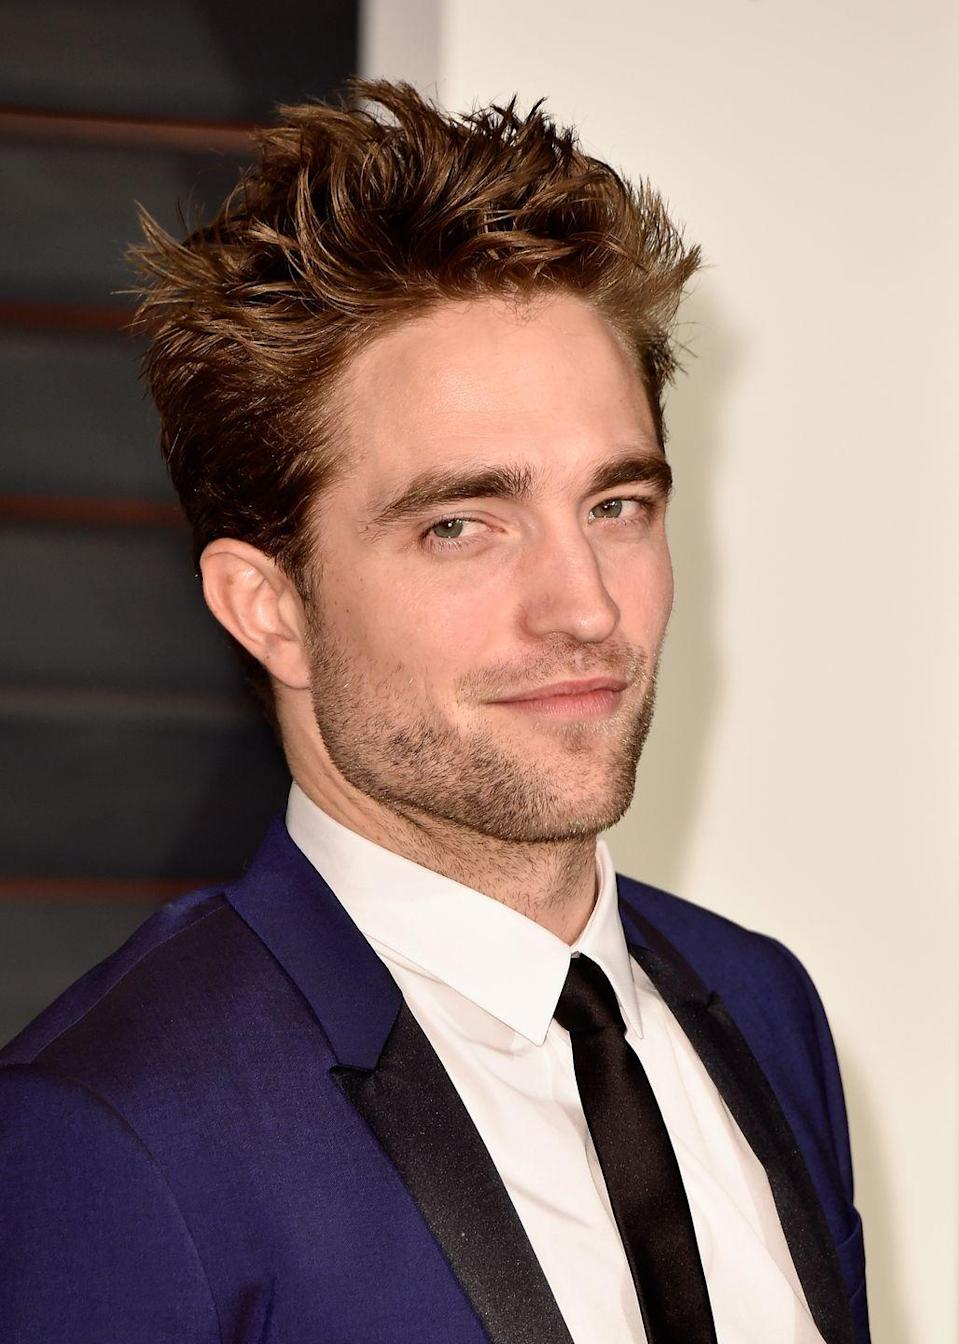 "<p>Robert Pattinson hates <em>Twilight</em>, hates Edward, and hates how everyone likes both. (P.S. There's even <a href=""https://robertpattinsonhatingtwilight.tumblr.com/"" rel=""nofollow noopener"" target=""_blank"" data-ylk=""slk:a Tumblr devoted"" class=""link rapid-noclick-resp"">a Tumblr devoted</a> to his interviews where he has to talk about <em>Twilight</em>, and ultimately makes fun of it.) Perhaps the best quote: ""He's the most ridiculous person...the more I read the script, the more I hated this guy...Plus, he's a 108 year-old virgin so he's obviously got some issues there.""</p>"